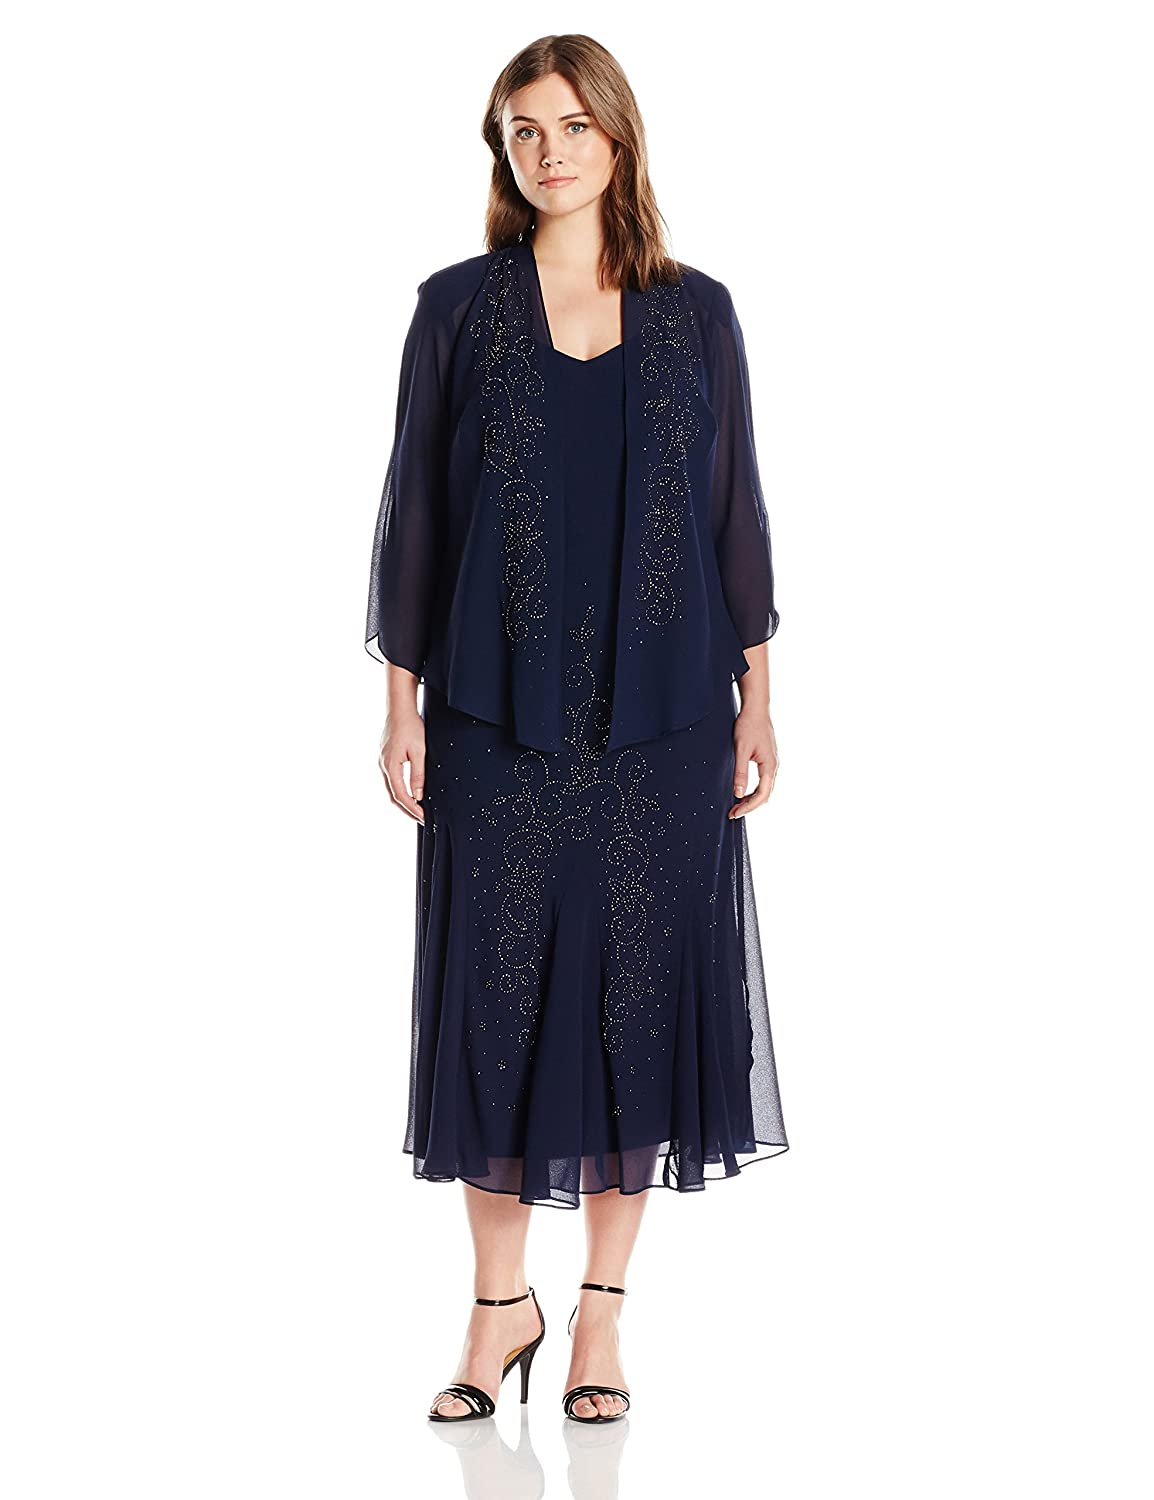 Vintage Evening Dresses and Formal Evening Gowns R&M Richards Womens Plus Size Beaded Chiffon Jacket Dress $139.00 AT vintagedancer.com